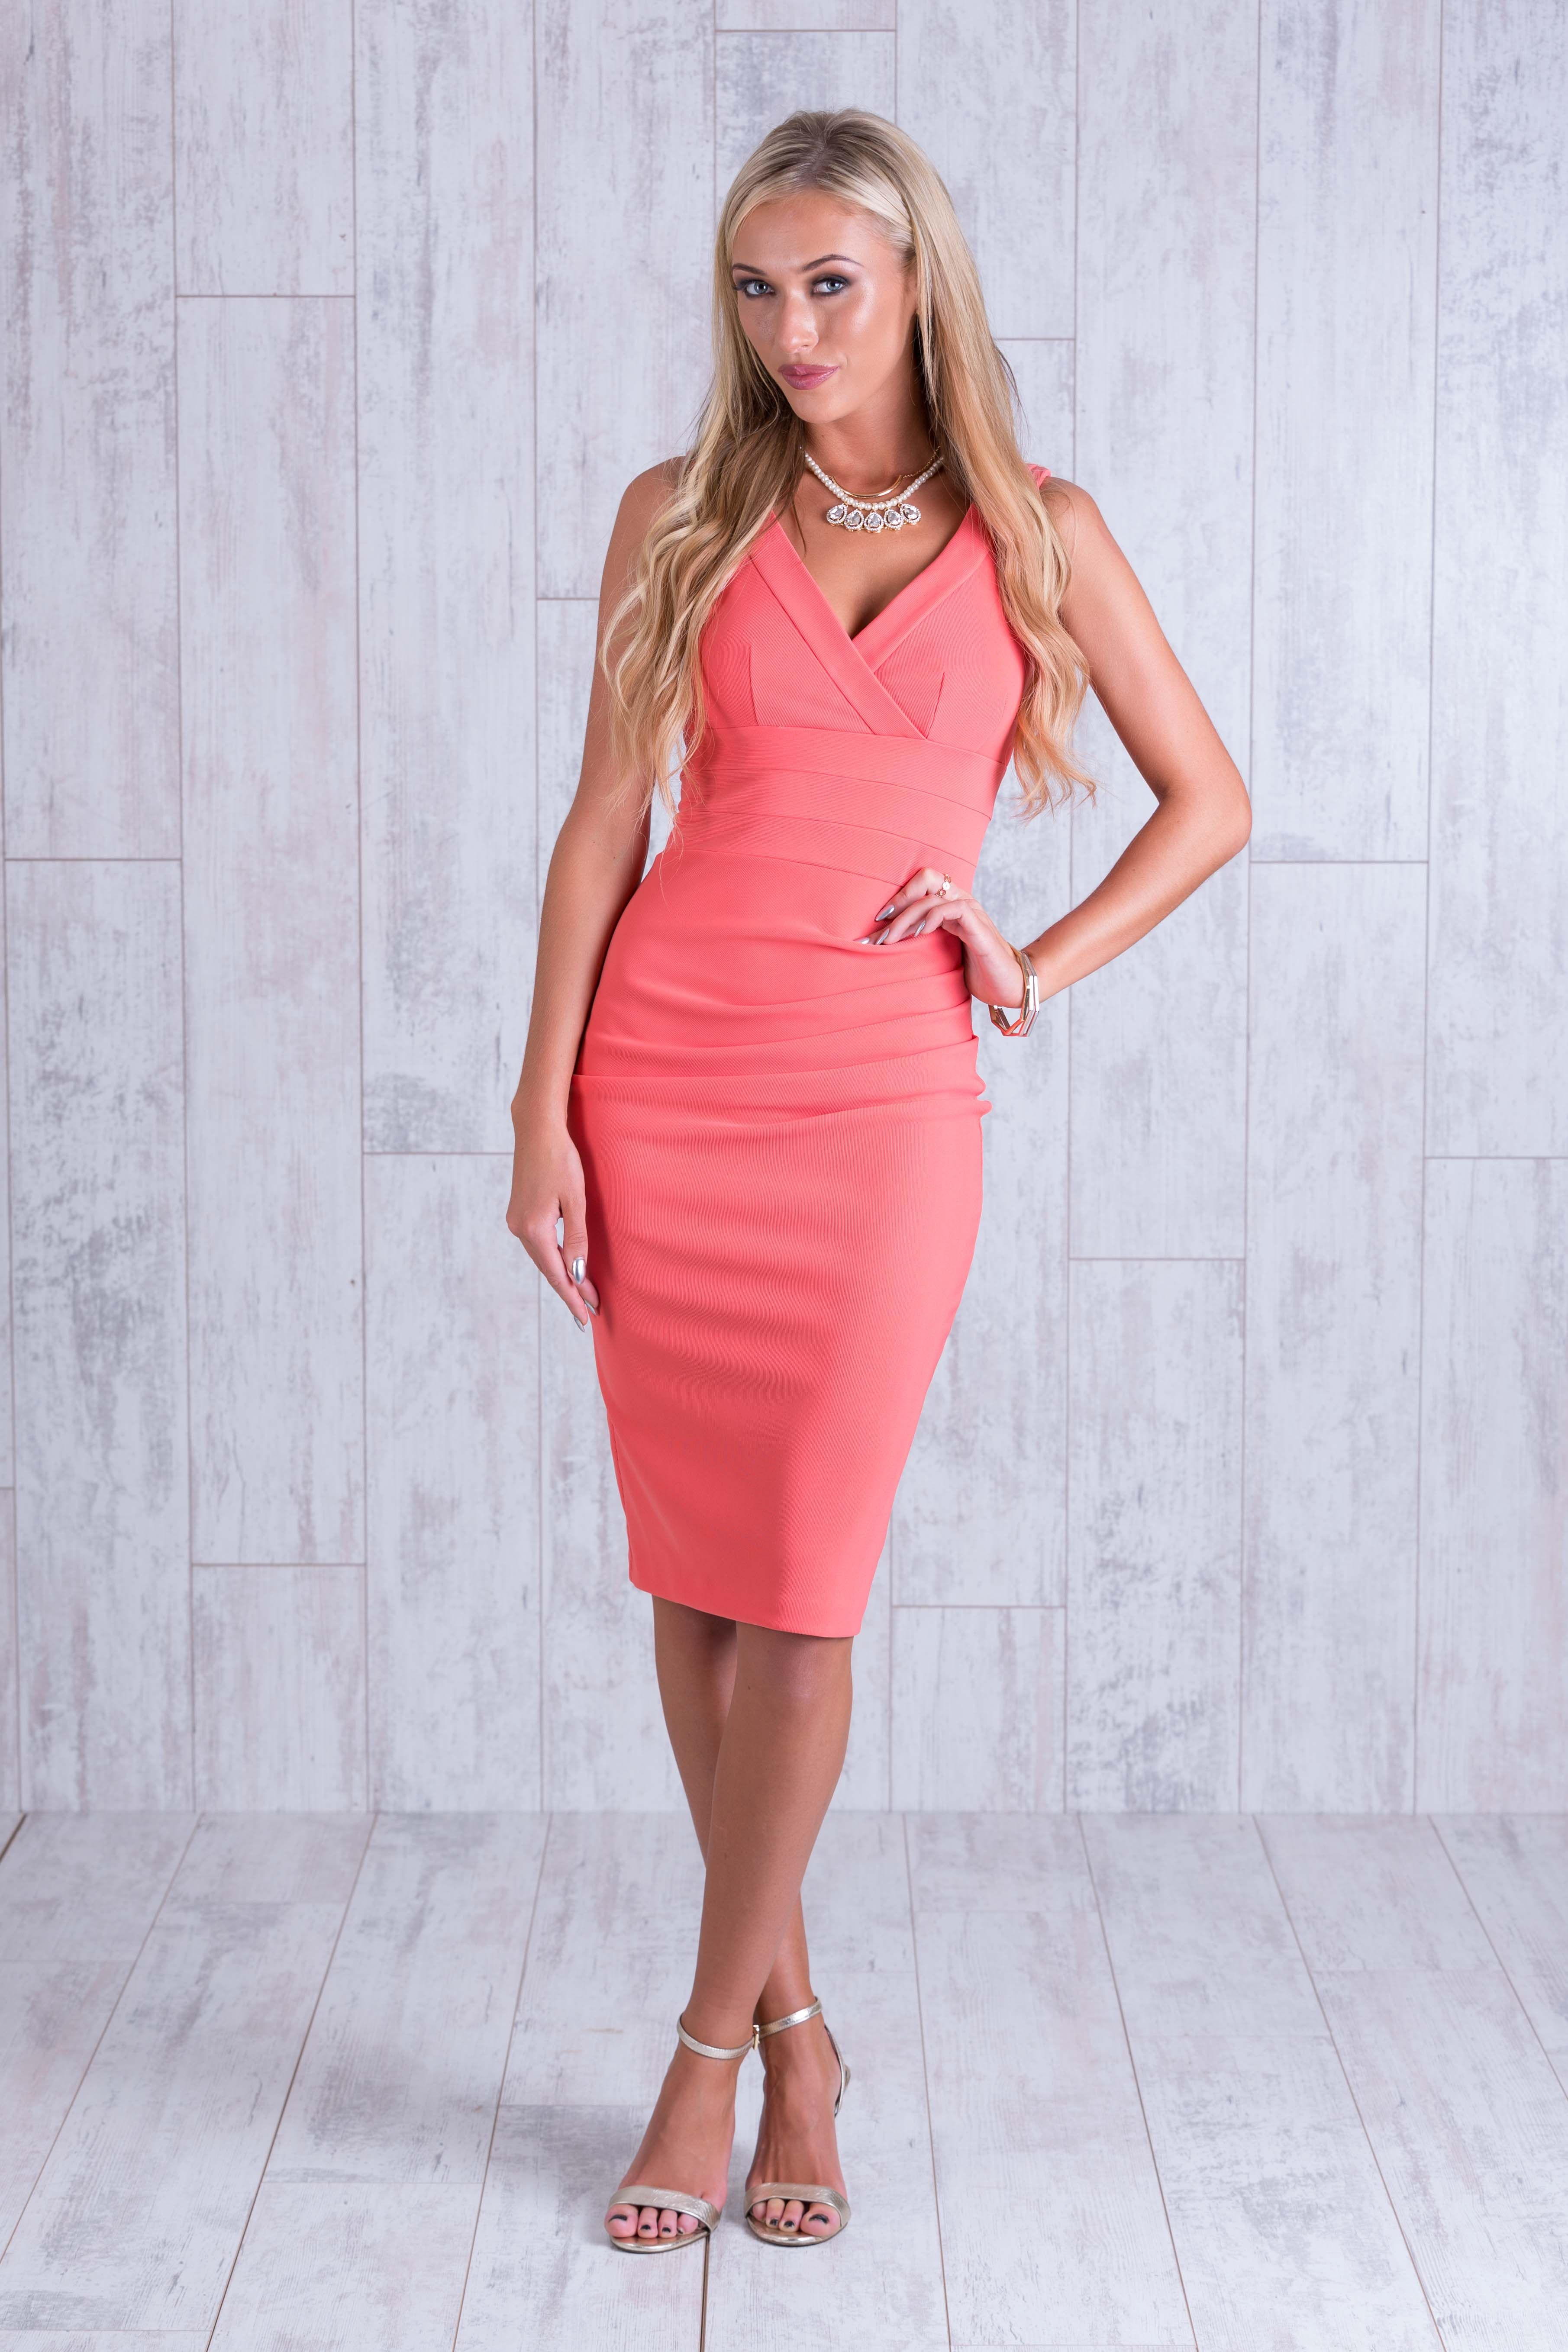 coral Banbury dress dress for wedding dress for day at races party ...